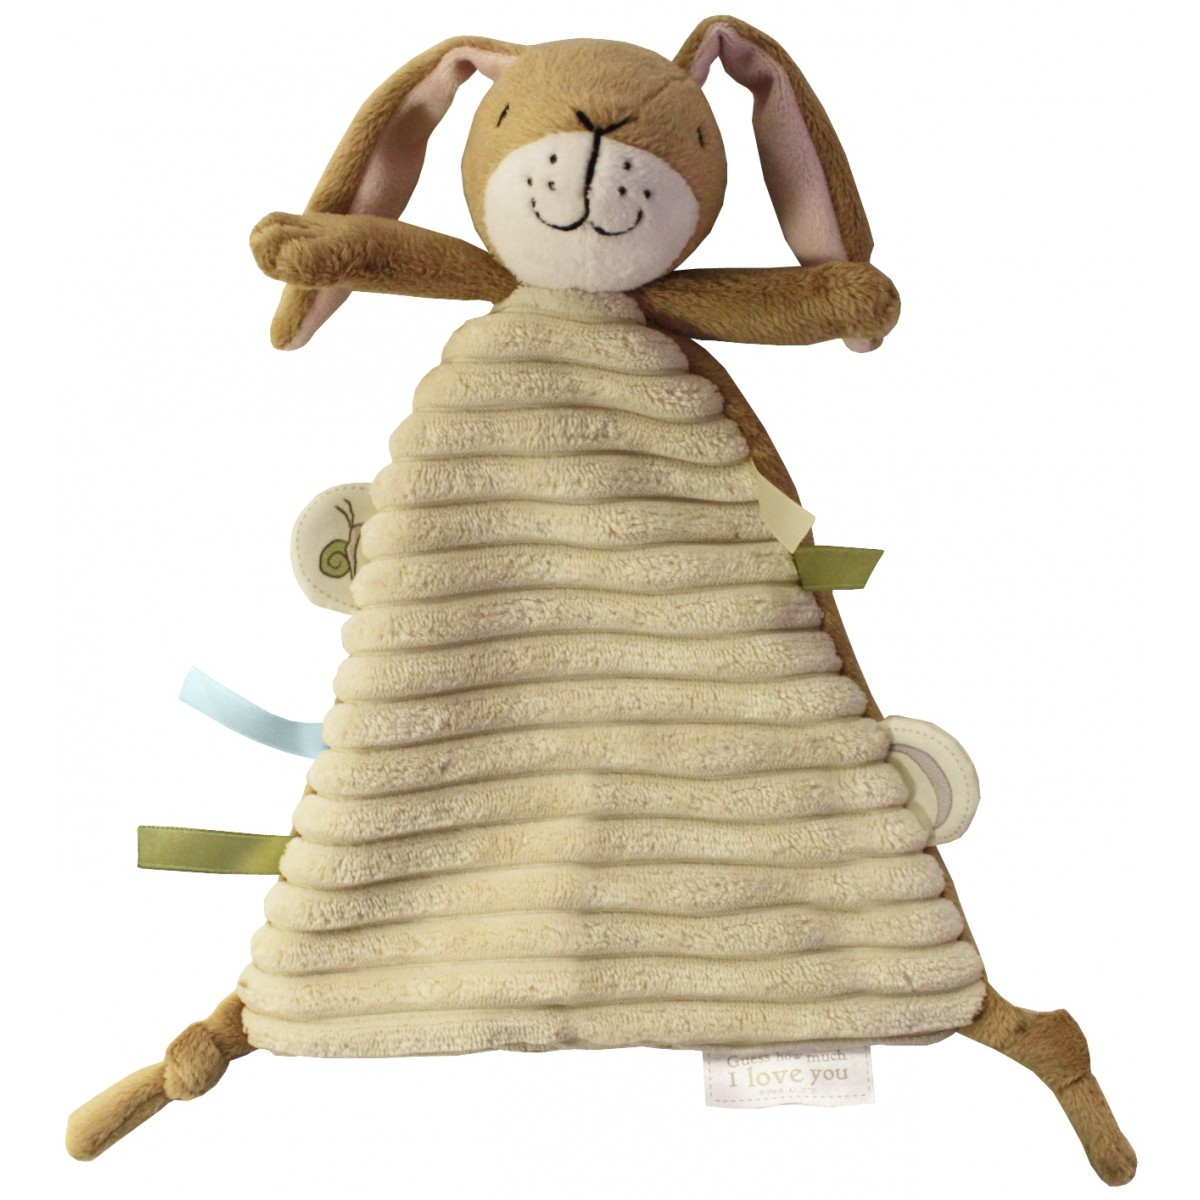 Little Nutbrown Hare Cuddle Blanket Plush image